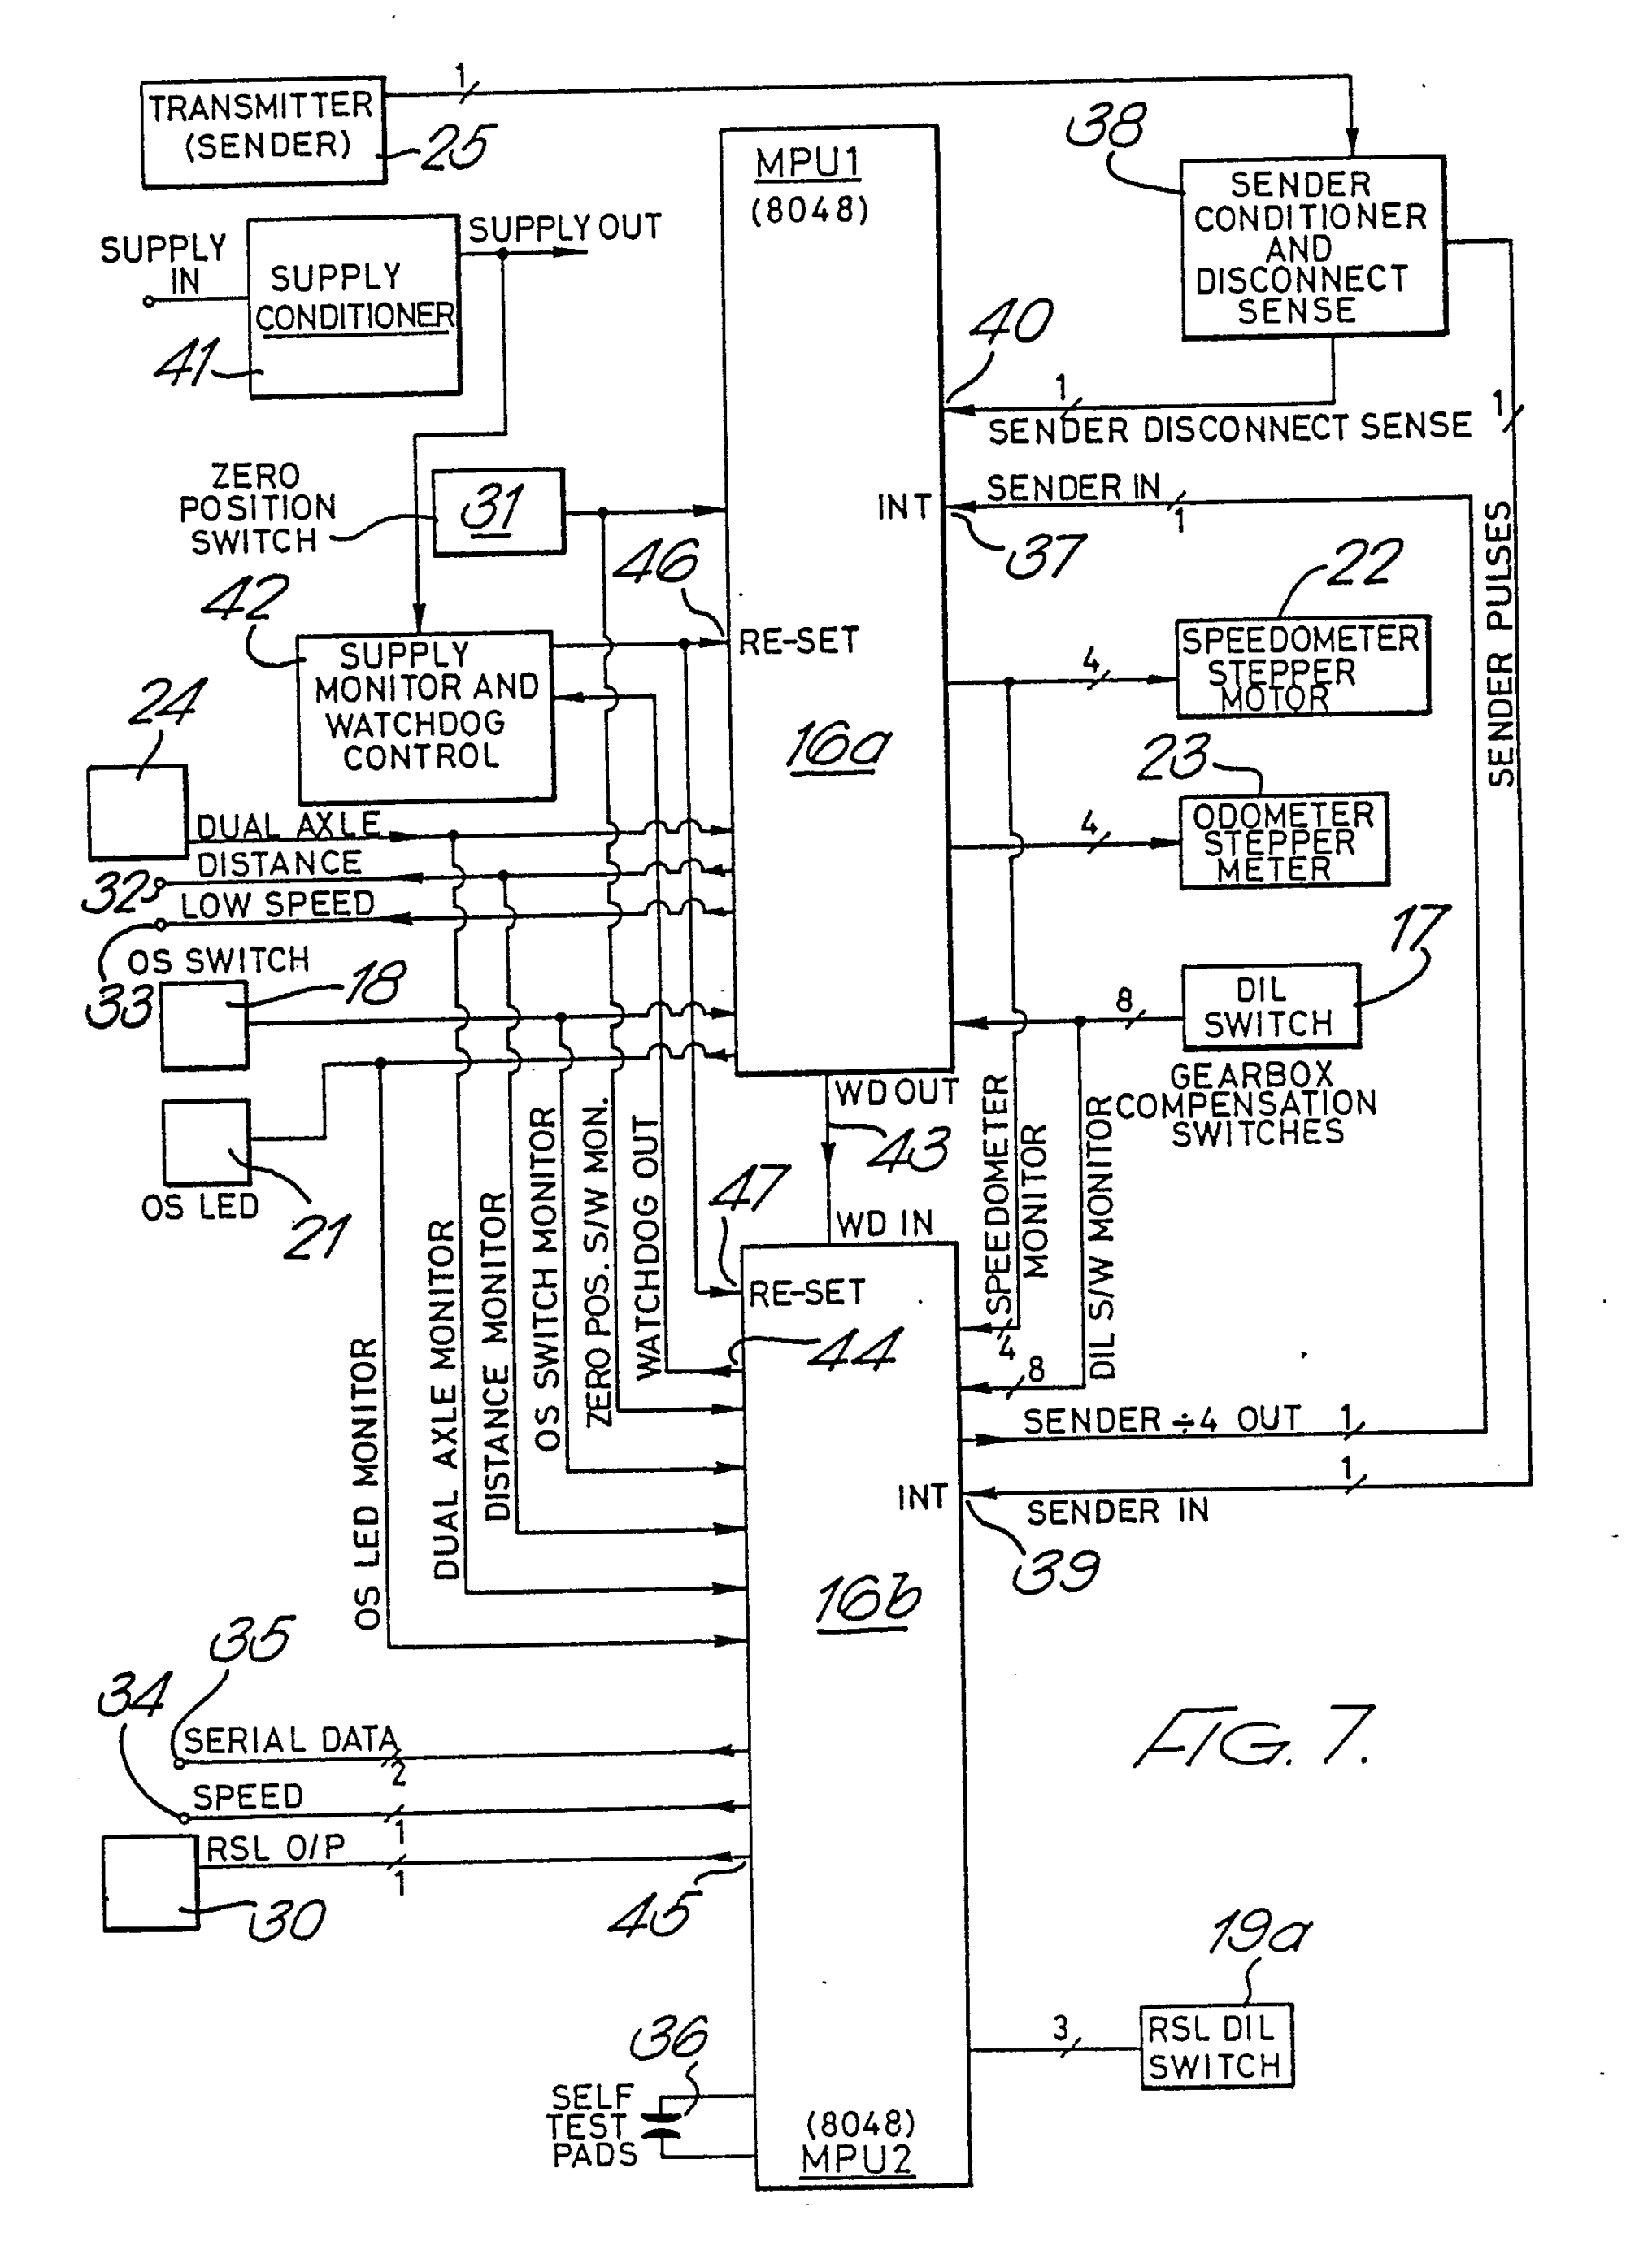 hight resolution of digital wiring diagram trusted wiring diagram simple wiring schematics digital wire diagram wiring diagrams ford wiring